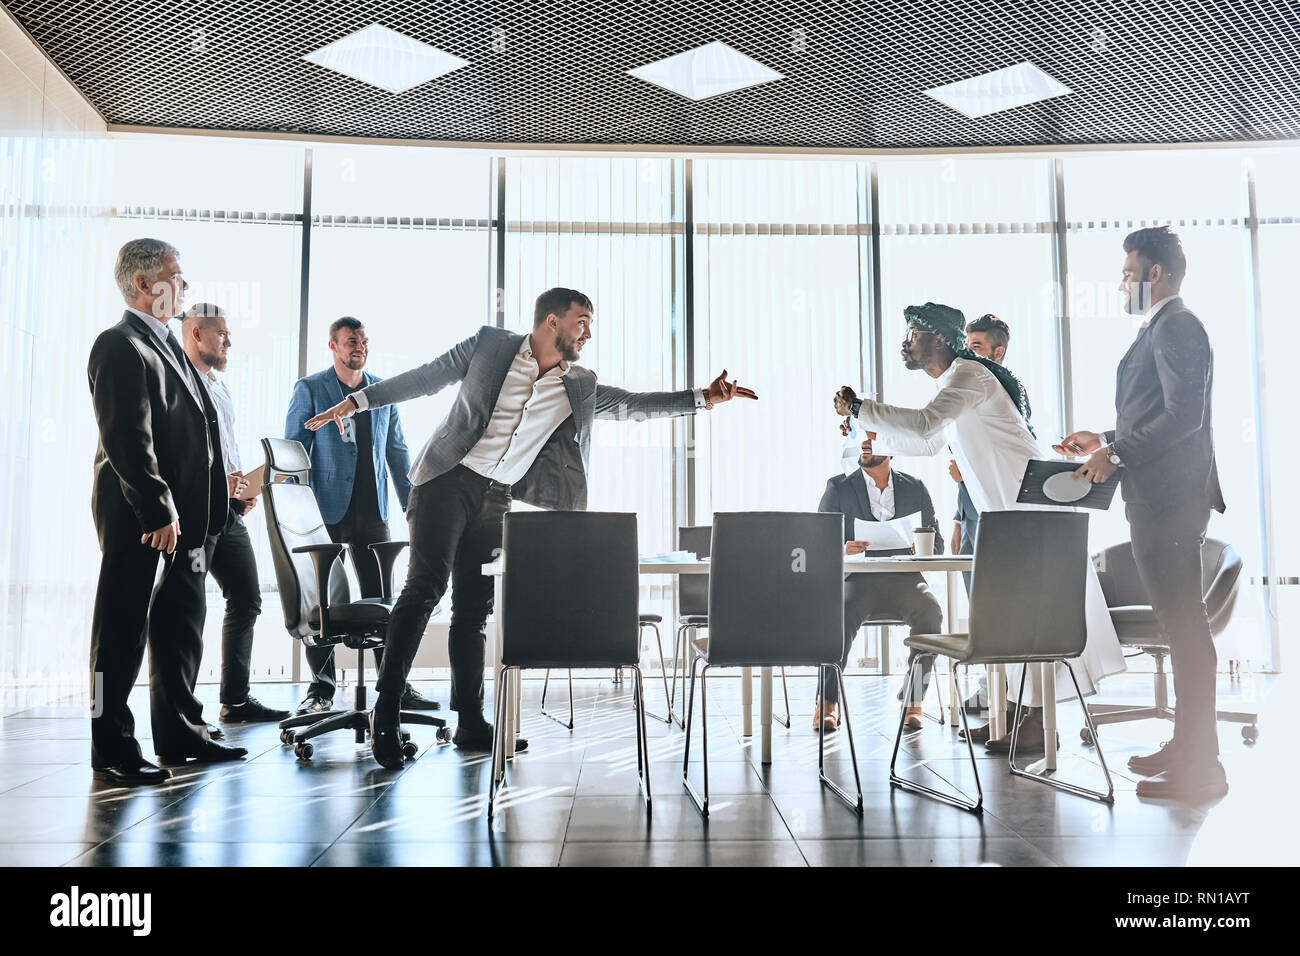 Angry Caucasian businessman threatens Arab colleague, , bullying and discrimination. fauil and failure concepts - Stock Image